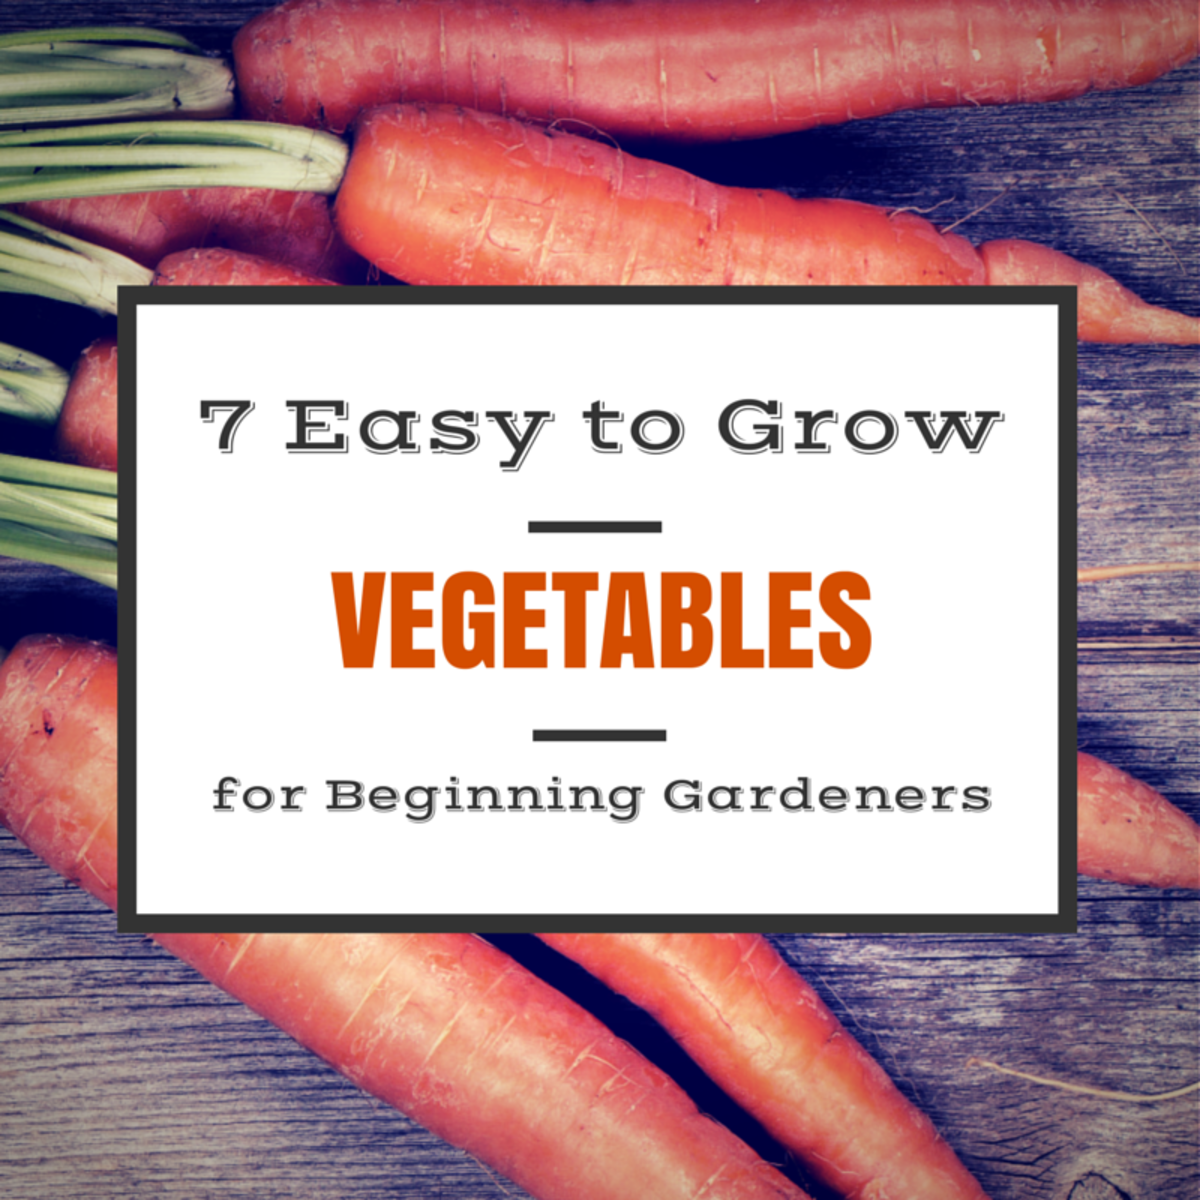 7 Easy to Grow Vegetables for Gardening Beginners